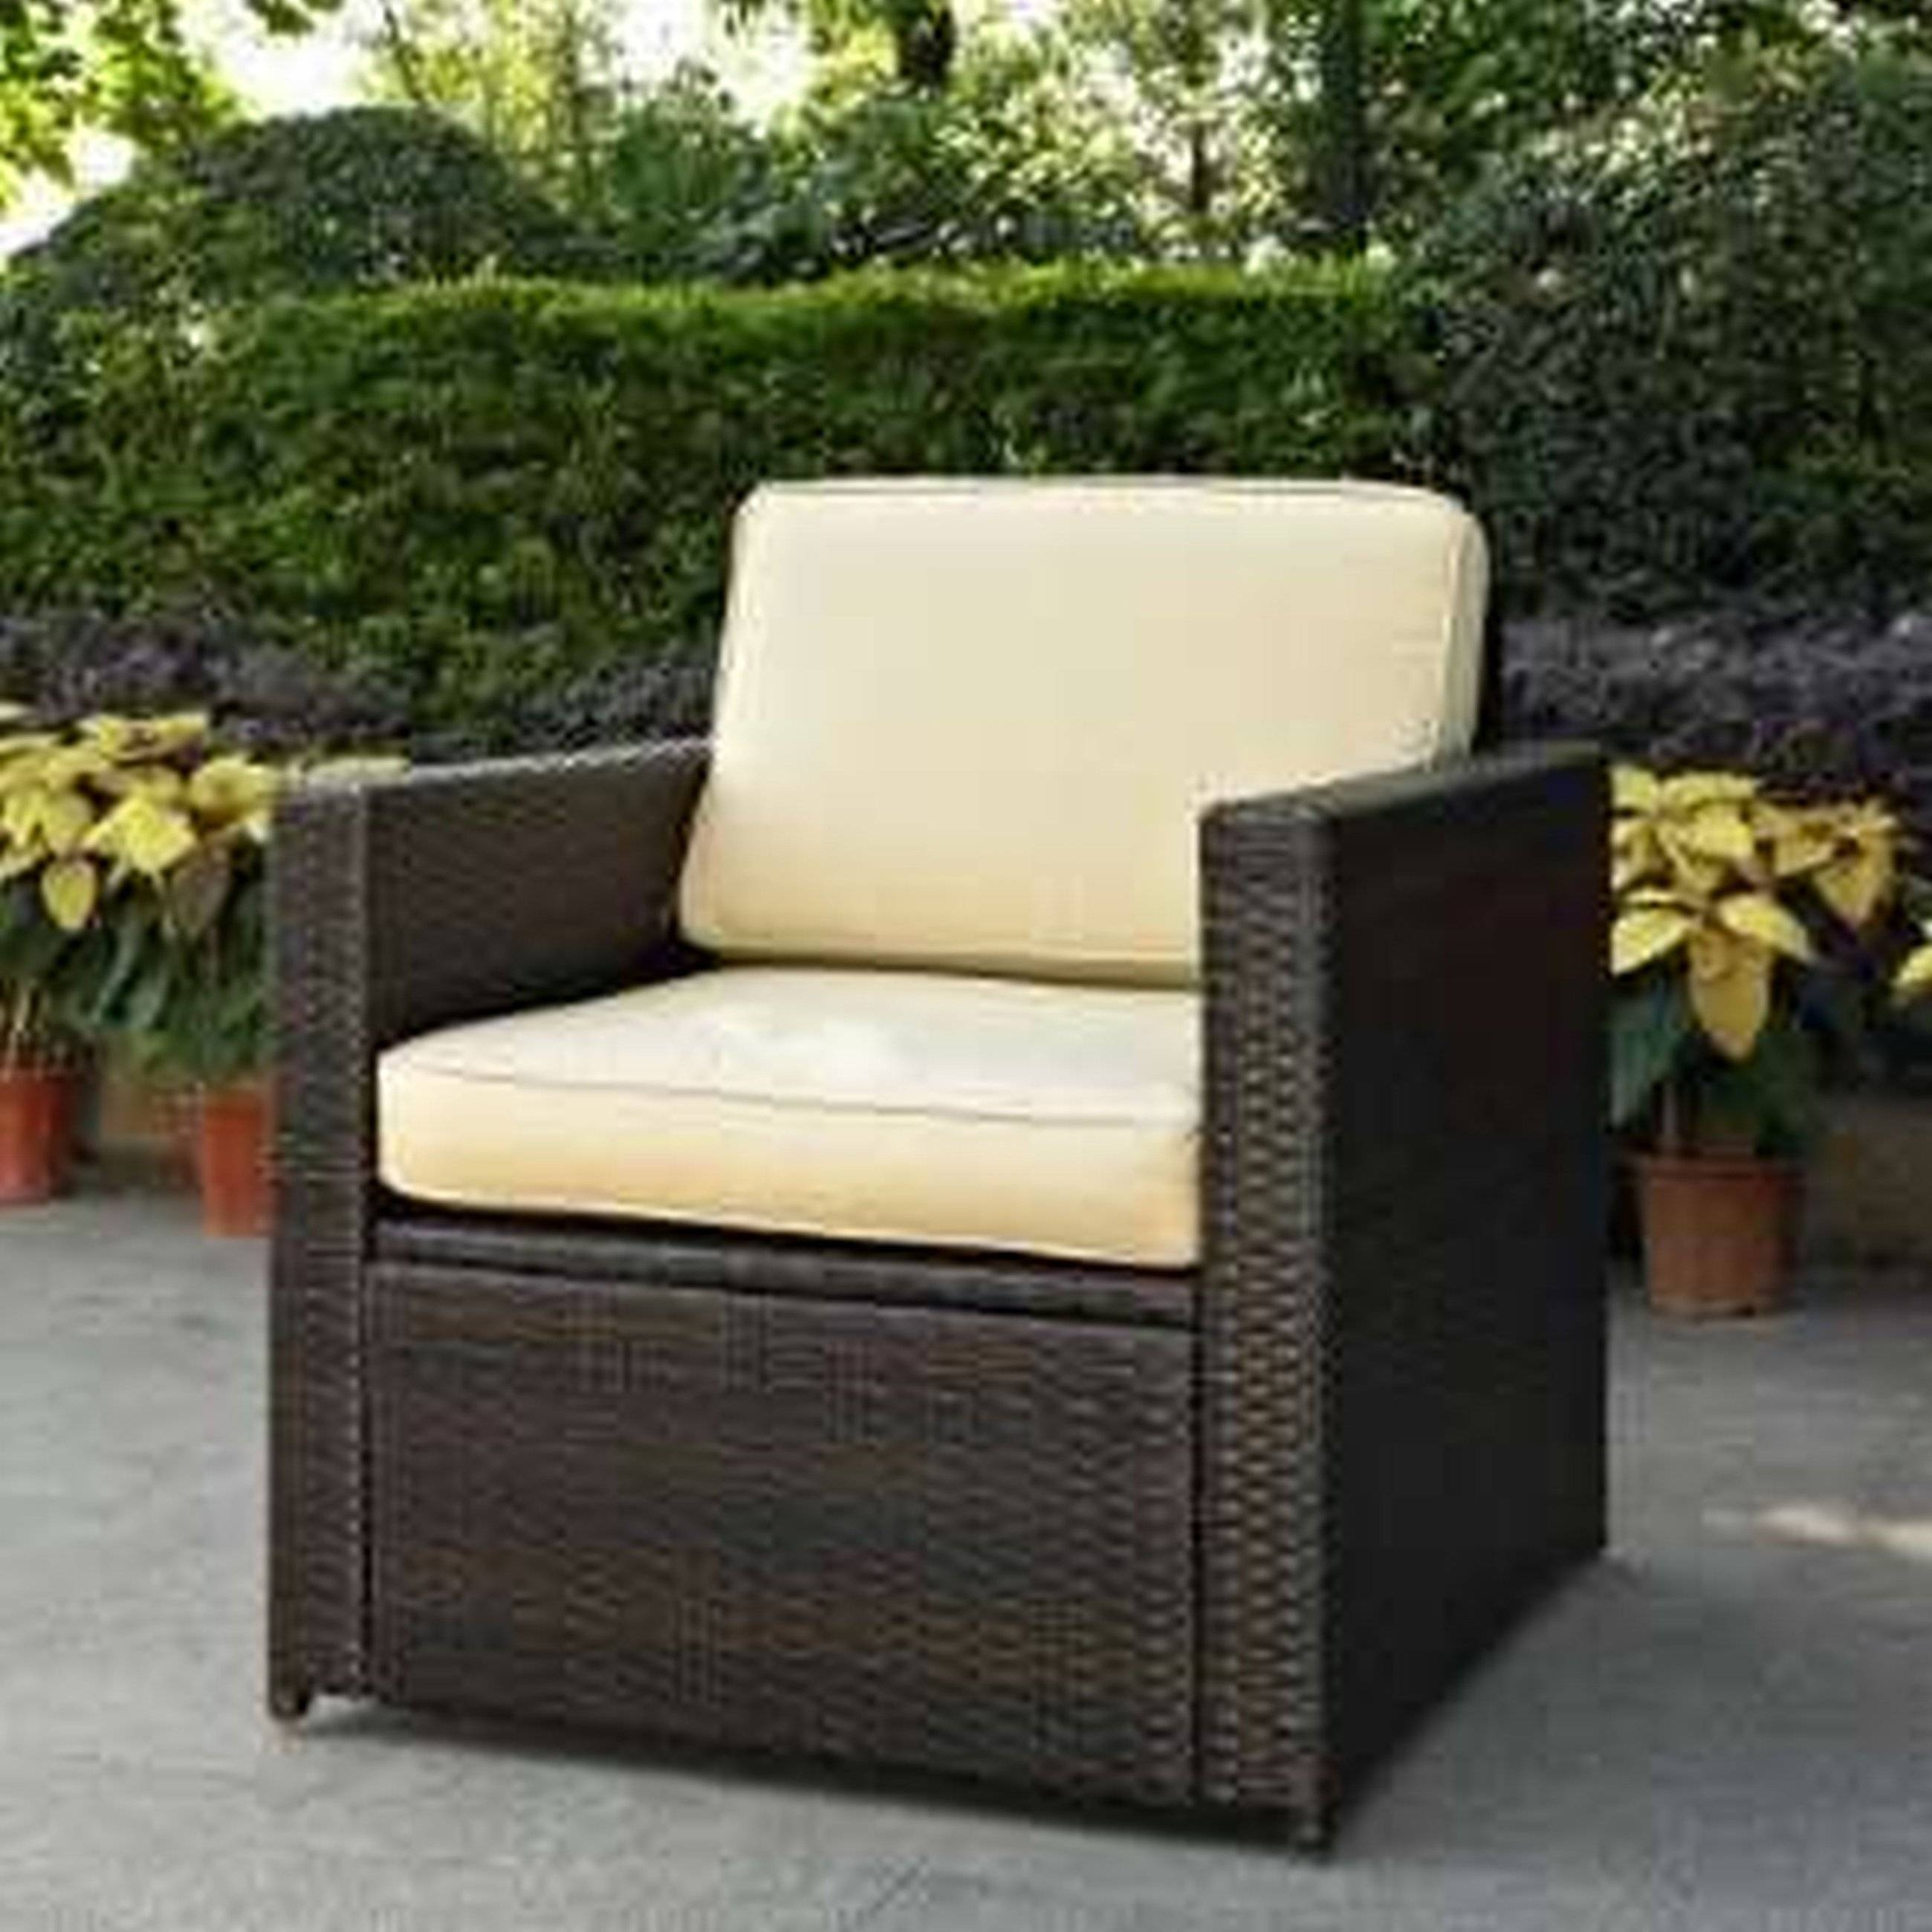 Furniture: Gorgeous Frontgate Outdoor Furniture With Hampton Bay throughout Outdoor Sofas With Canopy (Image 13 of 30)